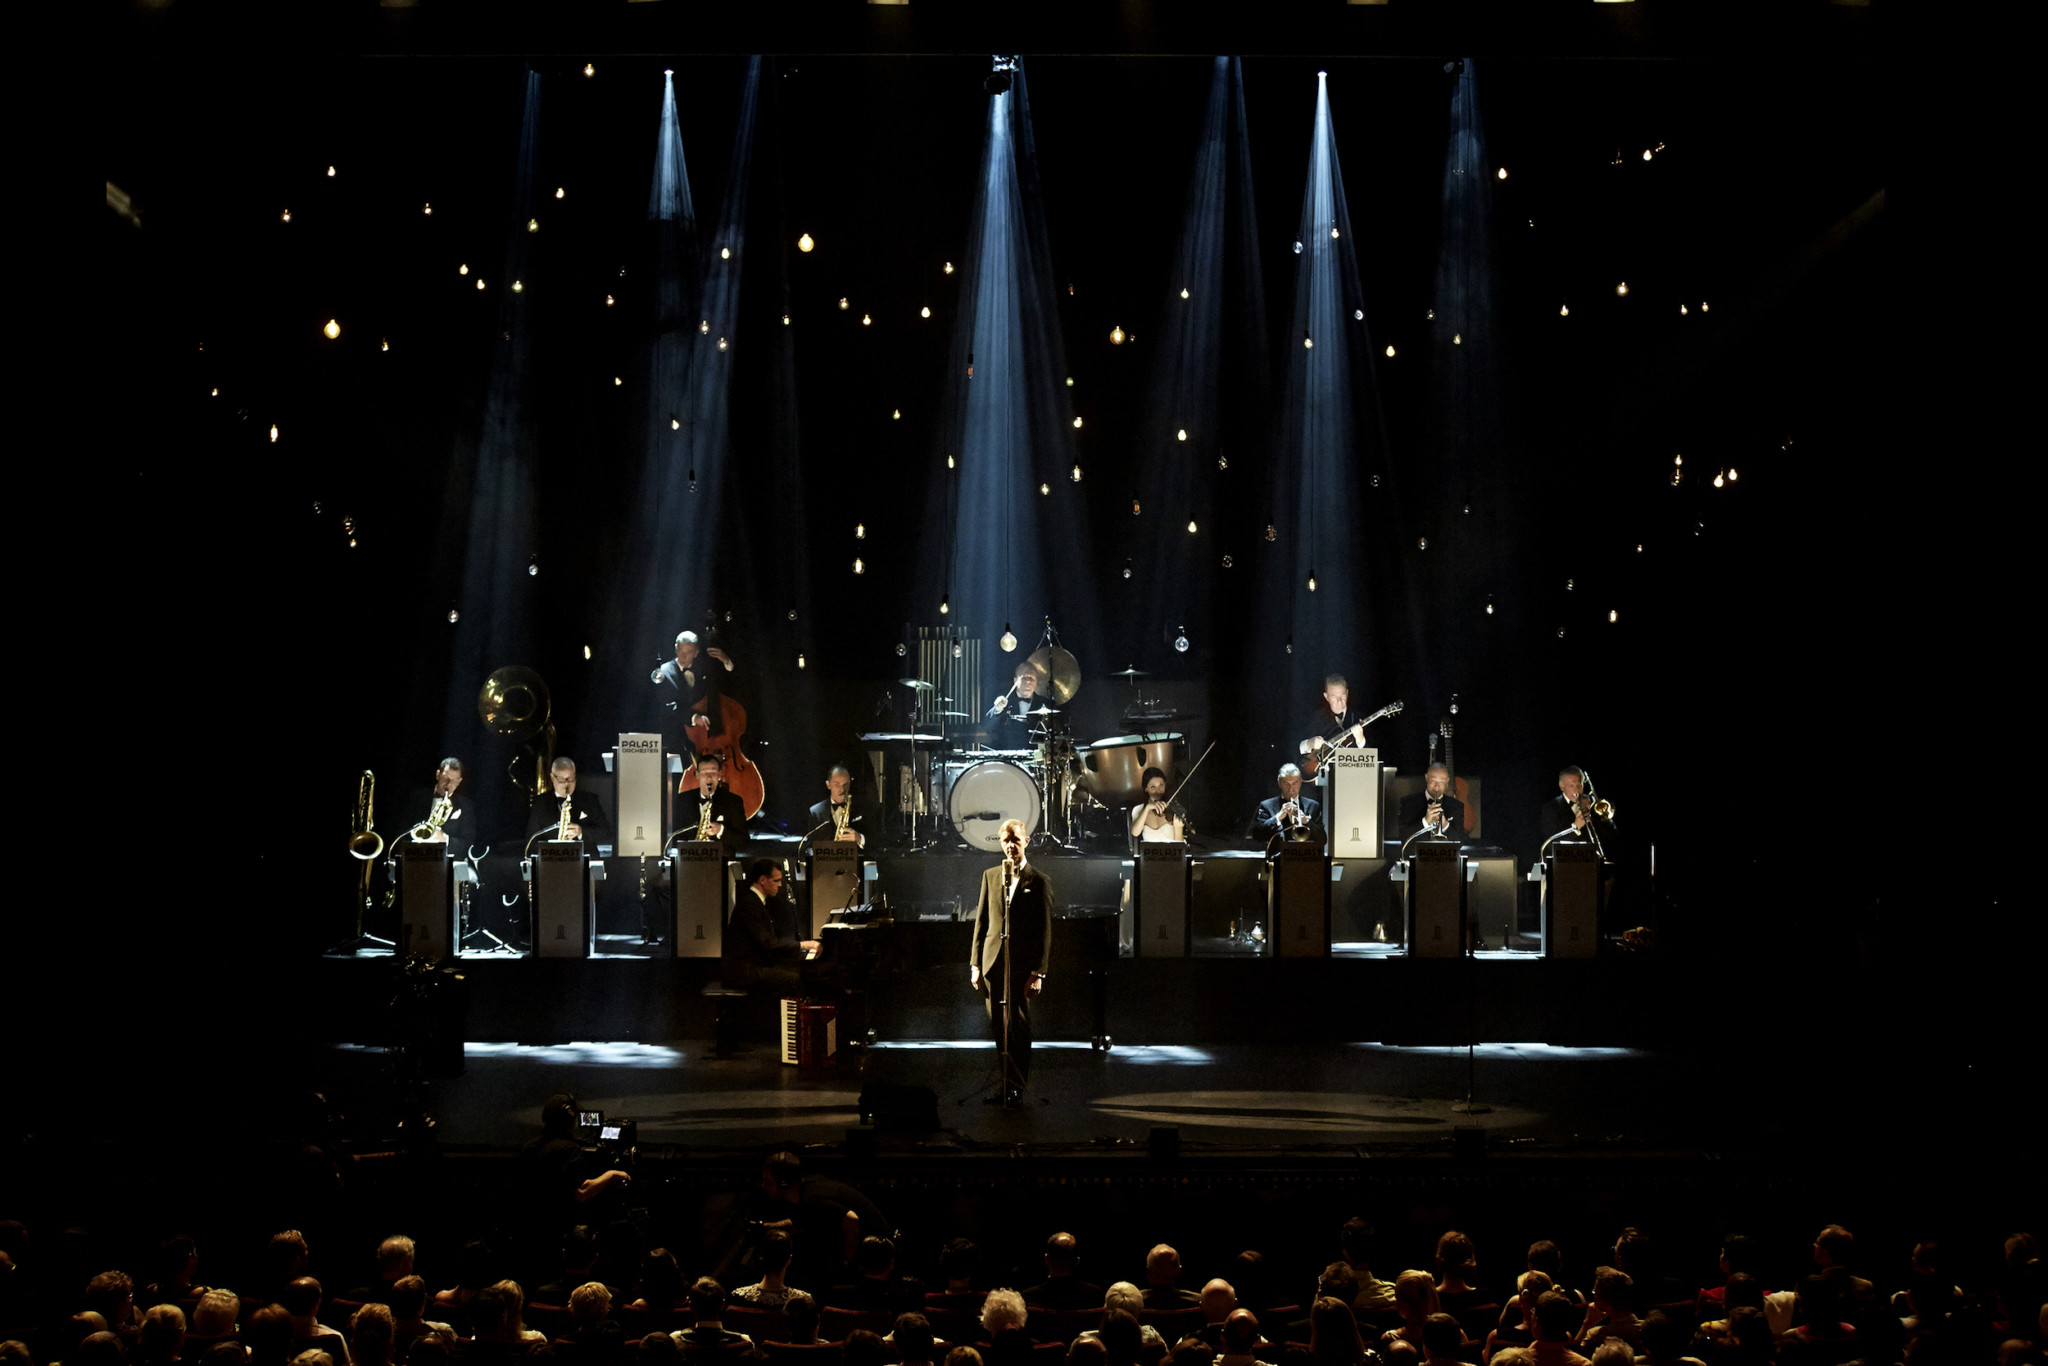 The Chan Centre presents Max Raabe & Palast Orchester, Germany's Legendary Singer and his Virtuoso Band